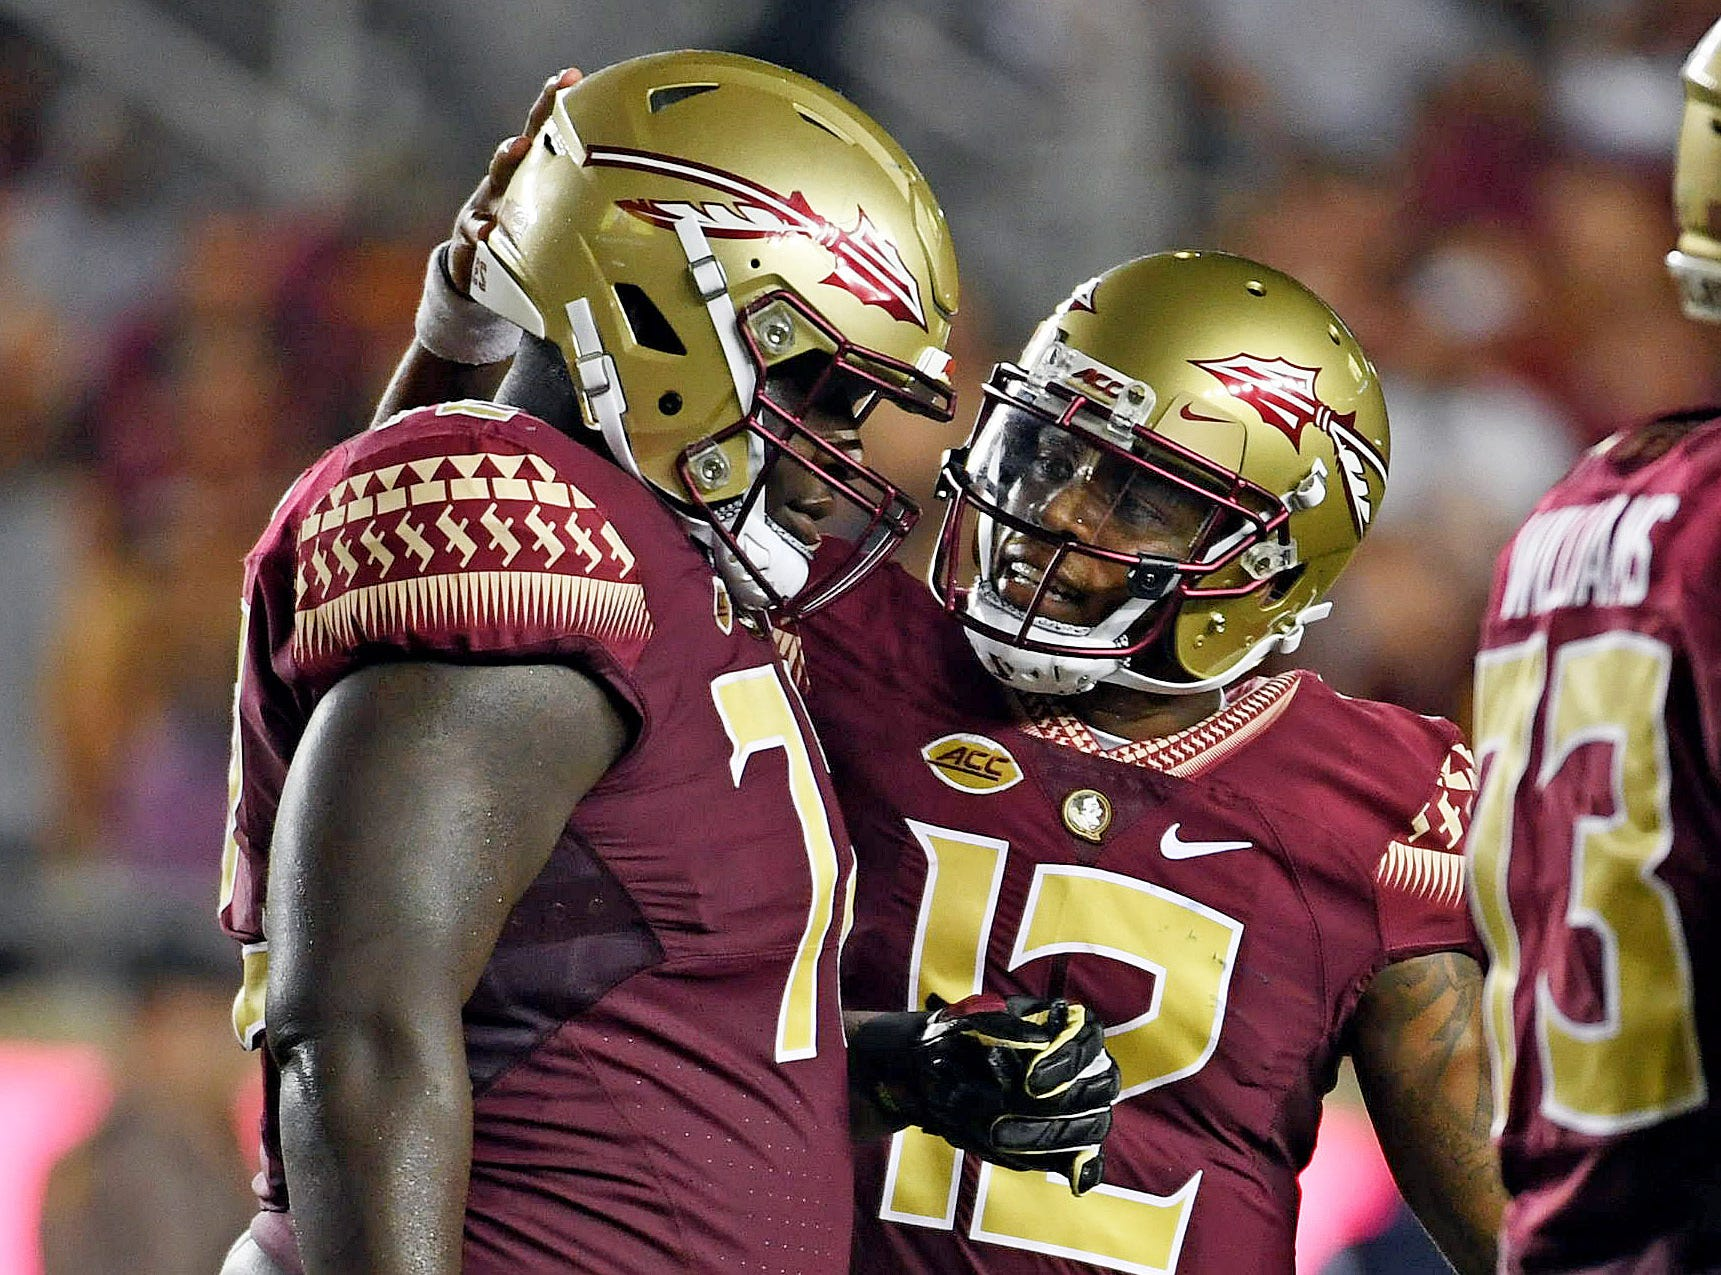 Florida State Seminoles quarterback Deondre Francois (12) talks to offensive lineman Mike Arnold (72) after a play in the first half against the Samford Bulldogs at Doak Campbell Stadium.